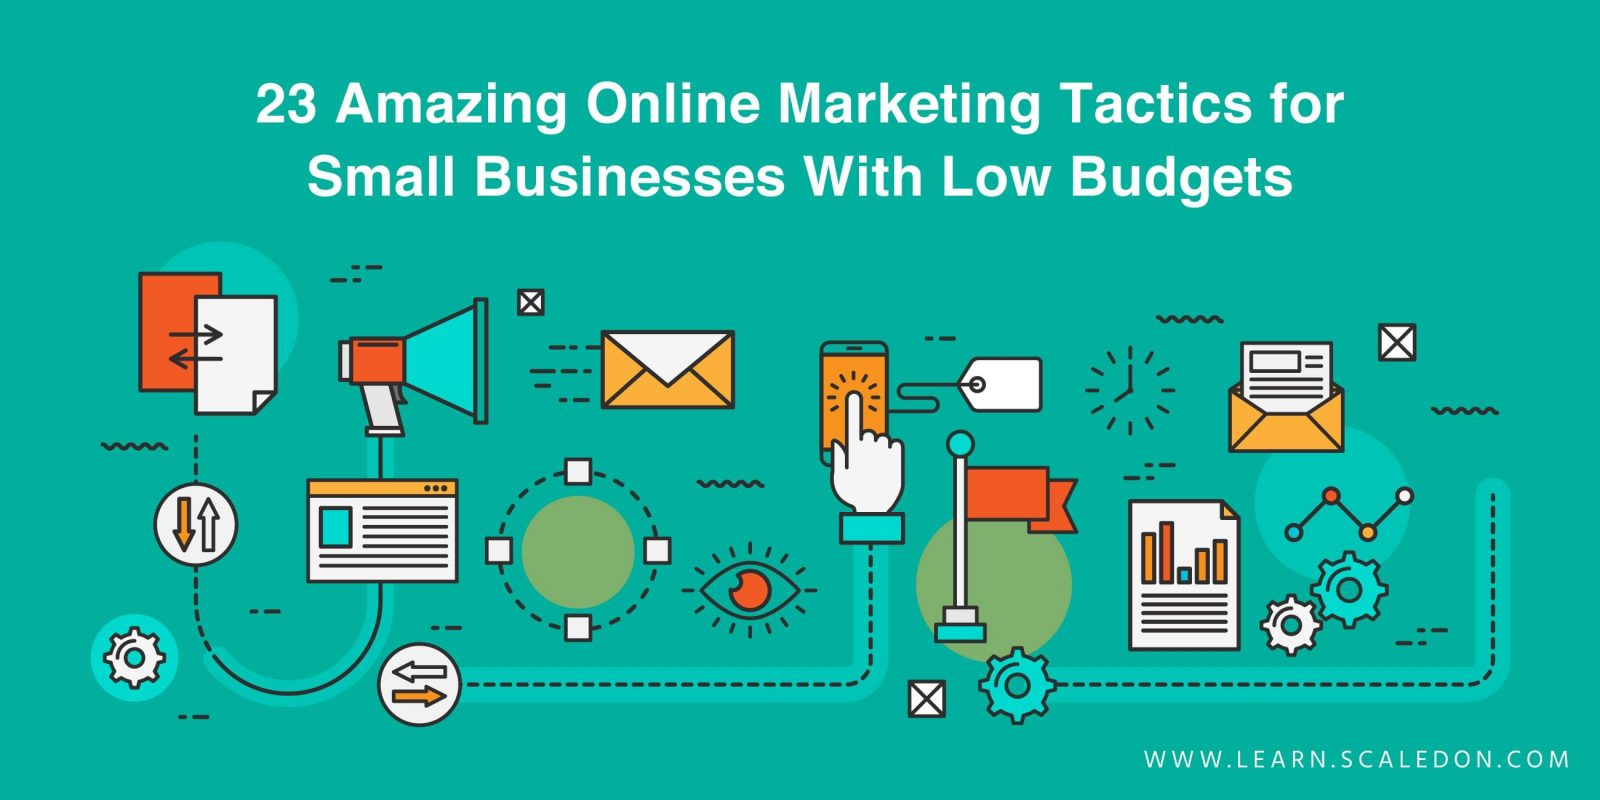 23 Amazing Online Marketing Tactics for Small Businesses With Low Budgets